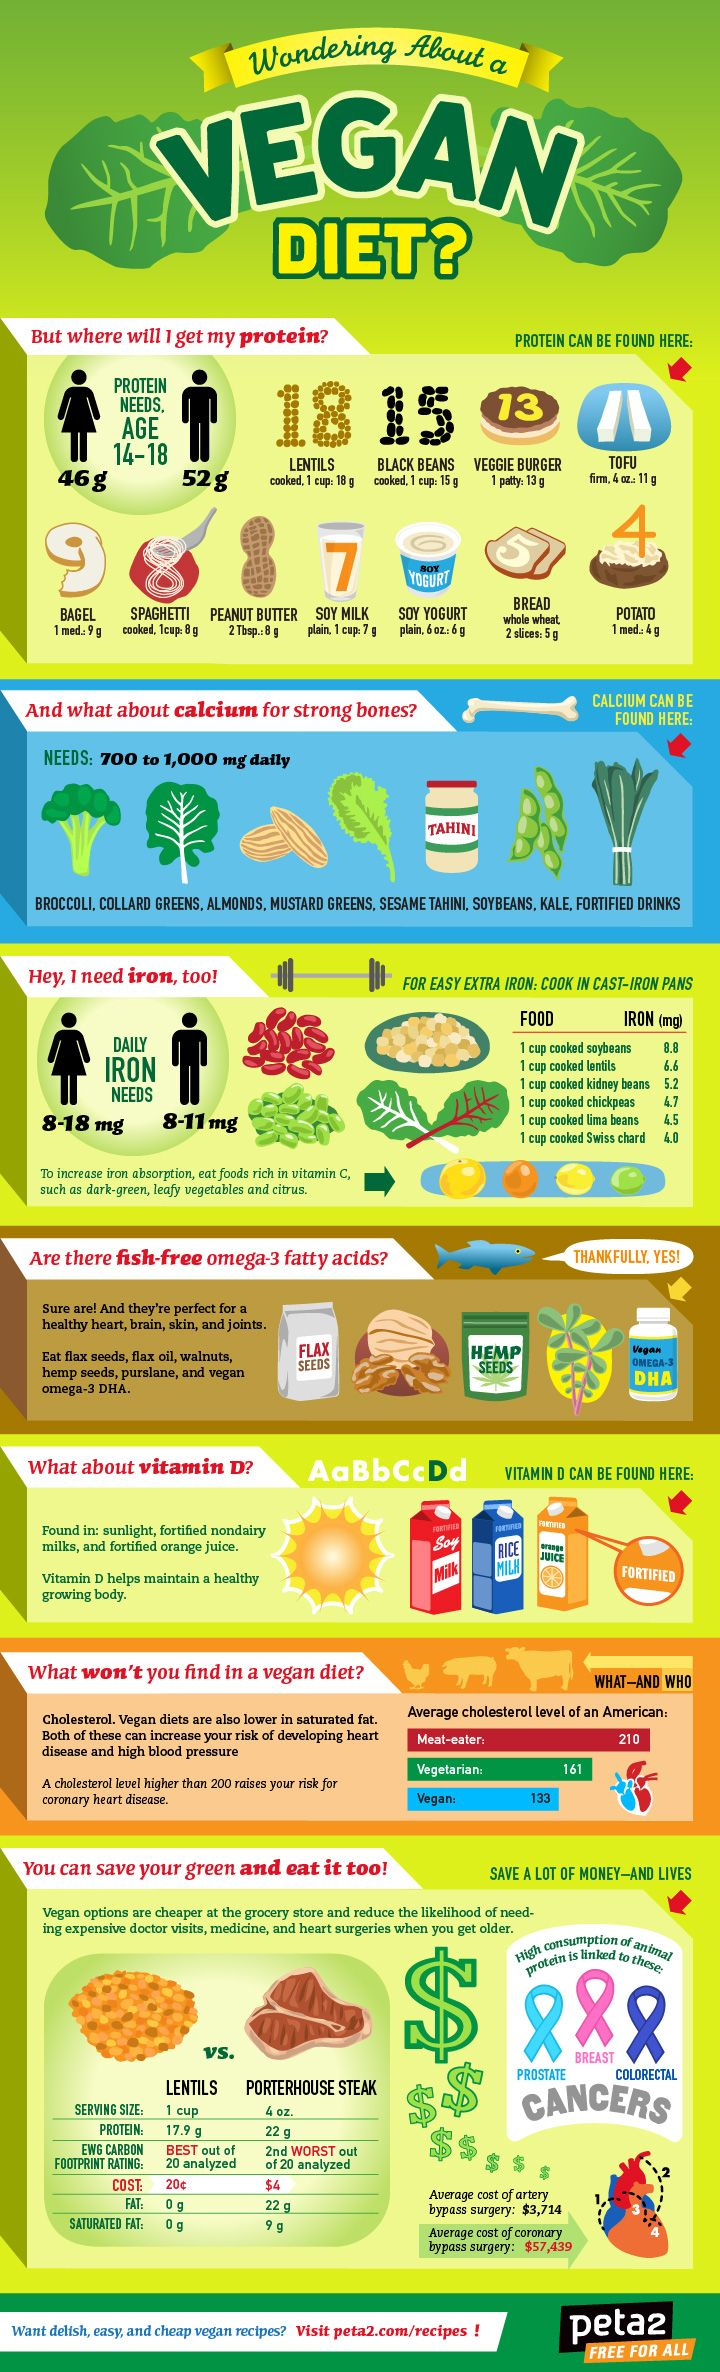 Vegan Diet | Explained